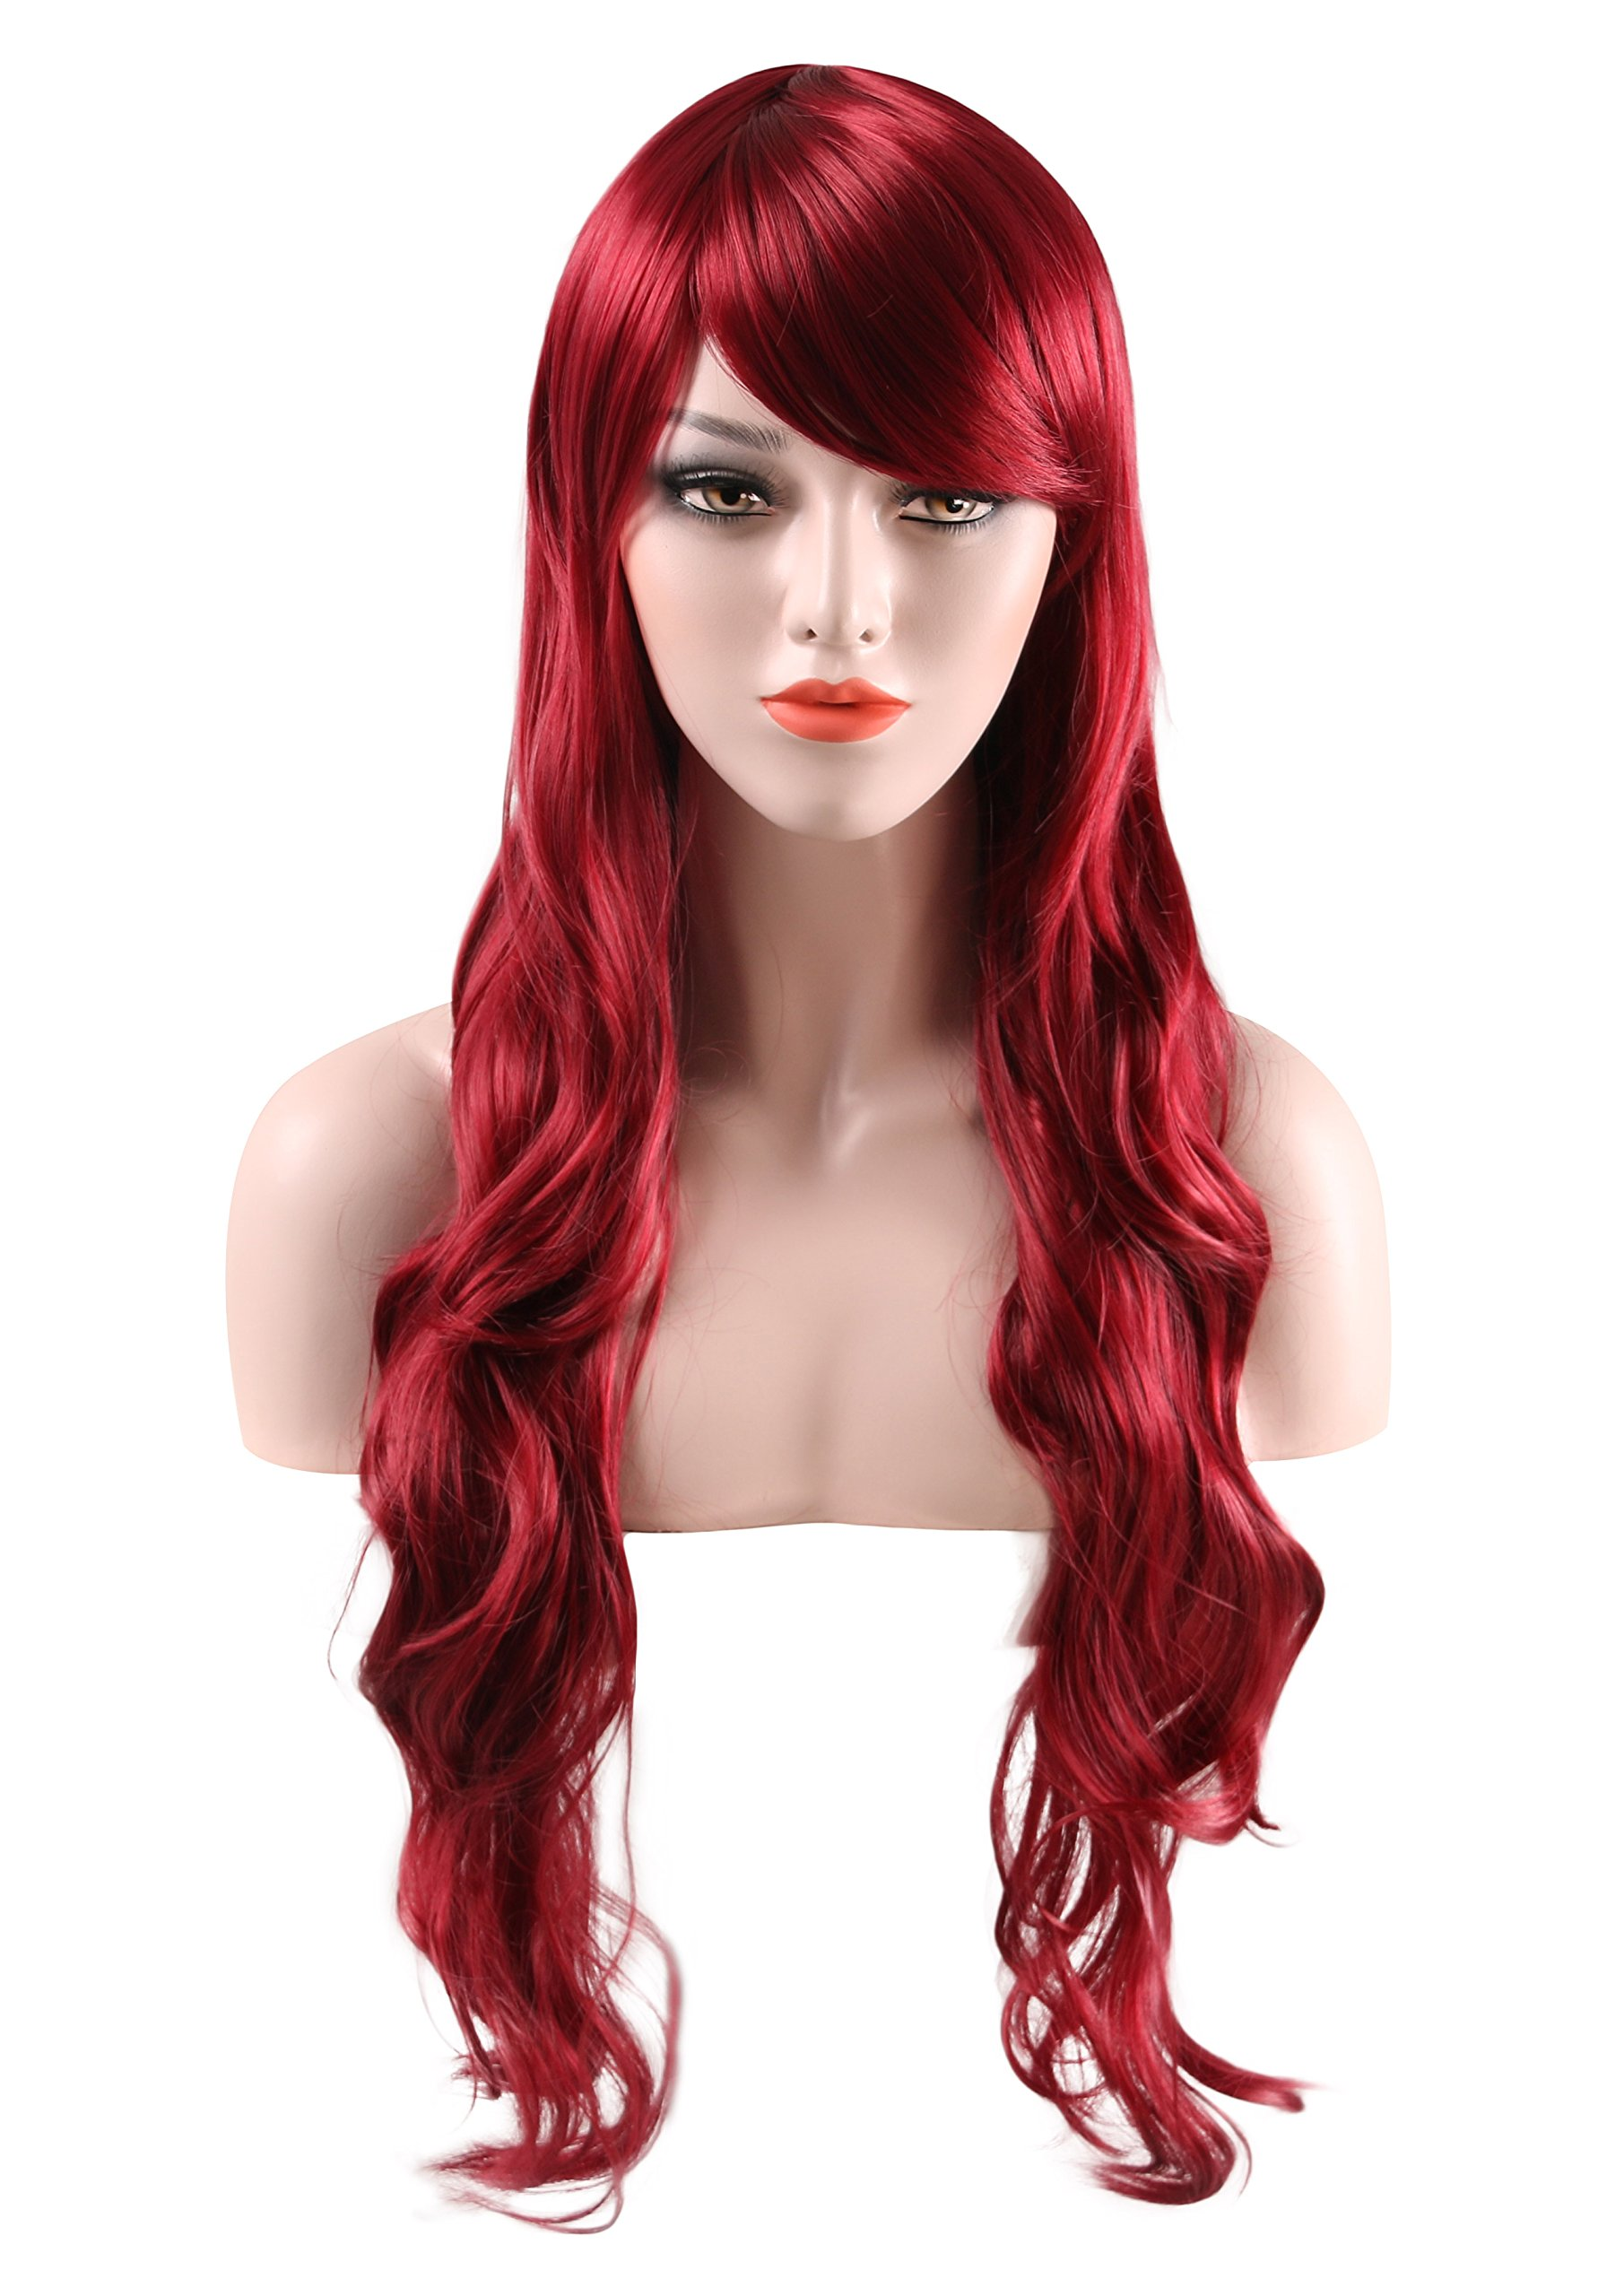 U.mslady Wigs 80 cm/32'' Women's Hair Wig Long Curly Hair Heat Resistant Spiral Wig for Cosplay/Halloween Party with Wig Cap (Dark Red) by U.mslady (Image #1)